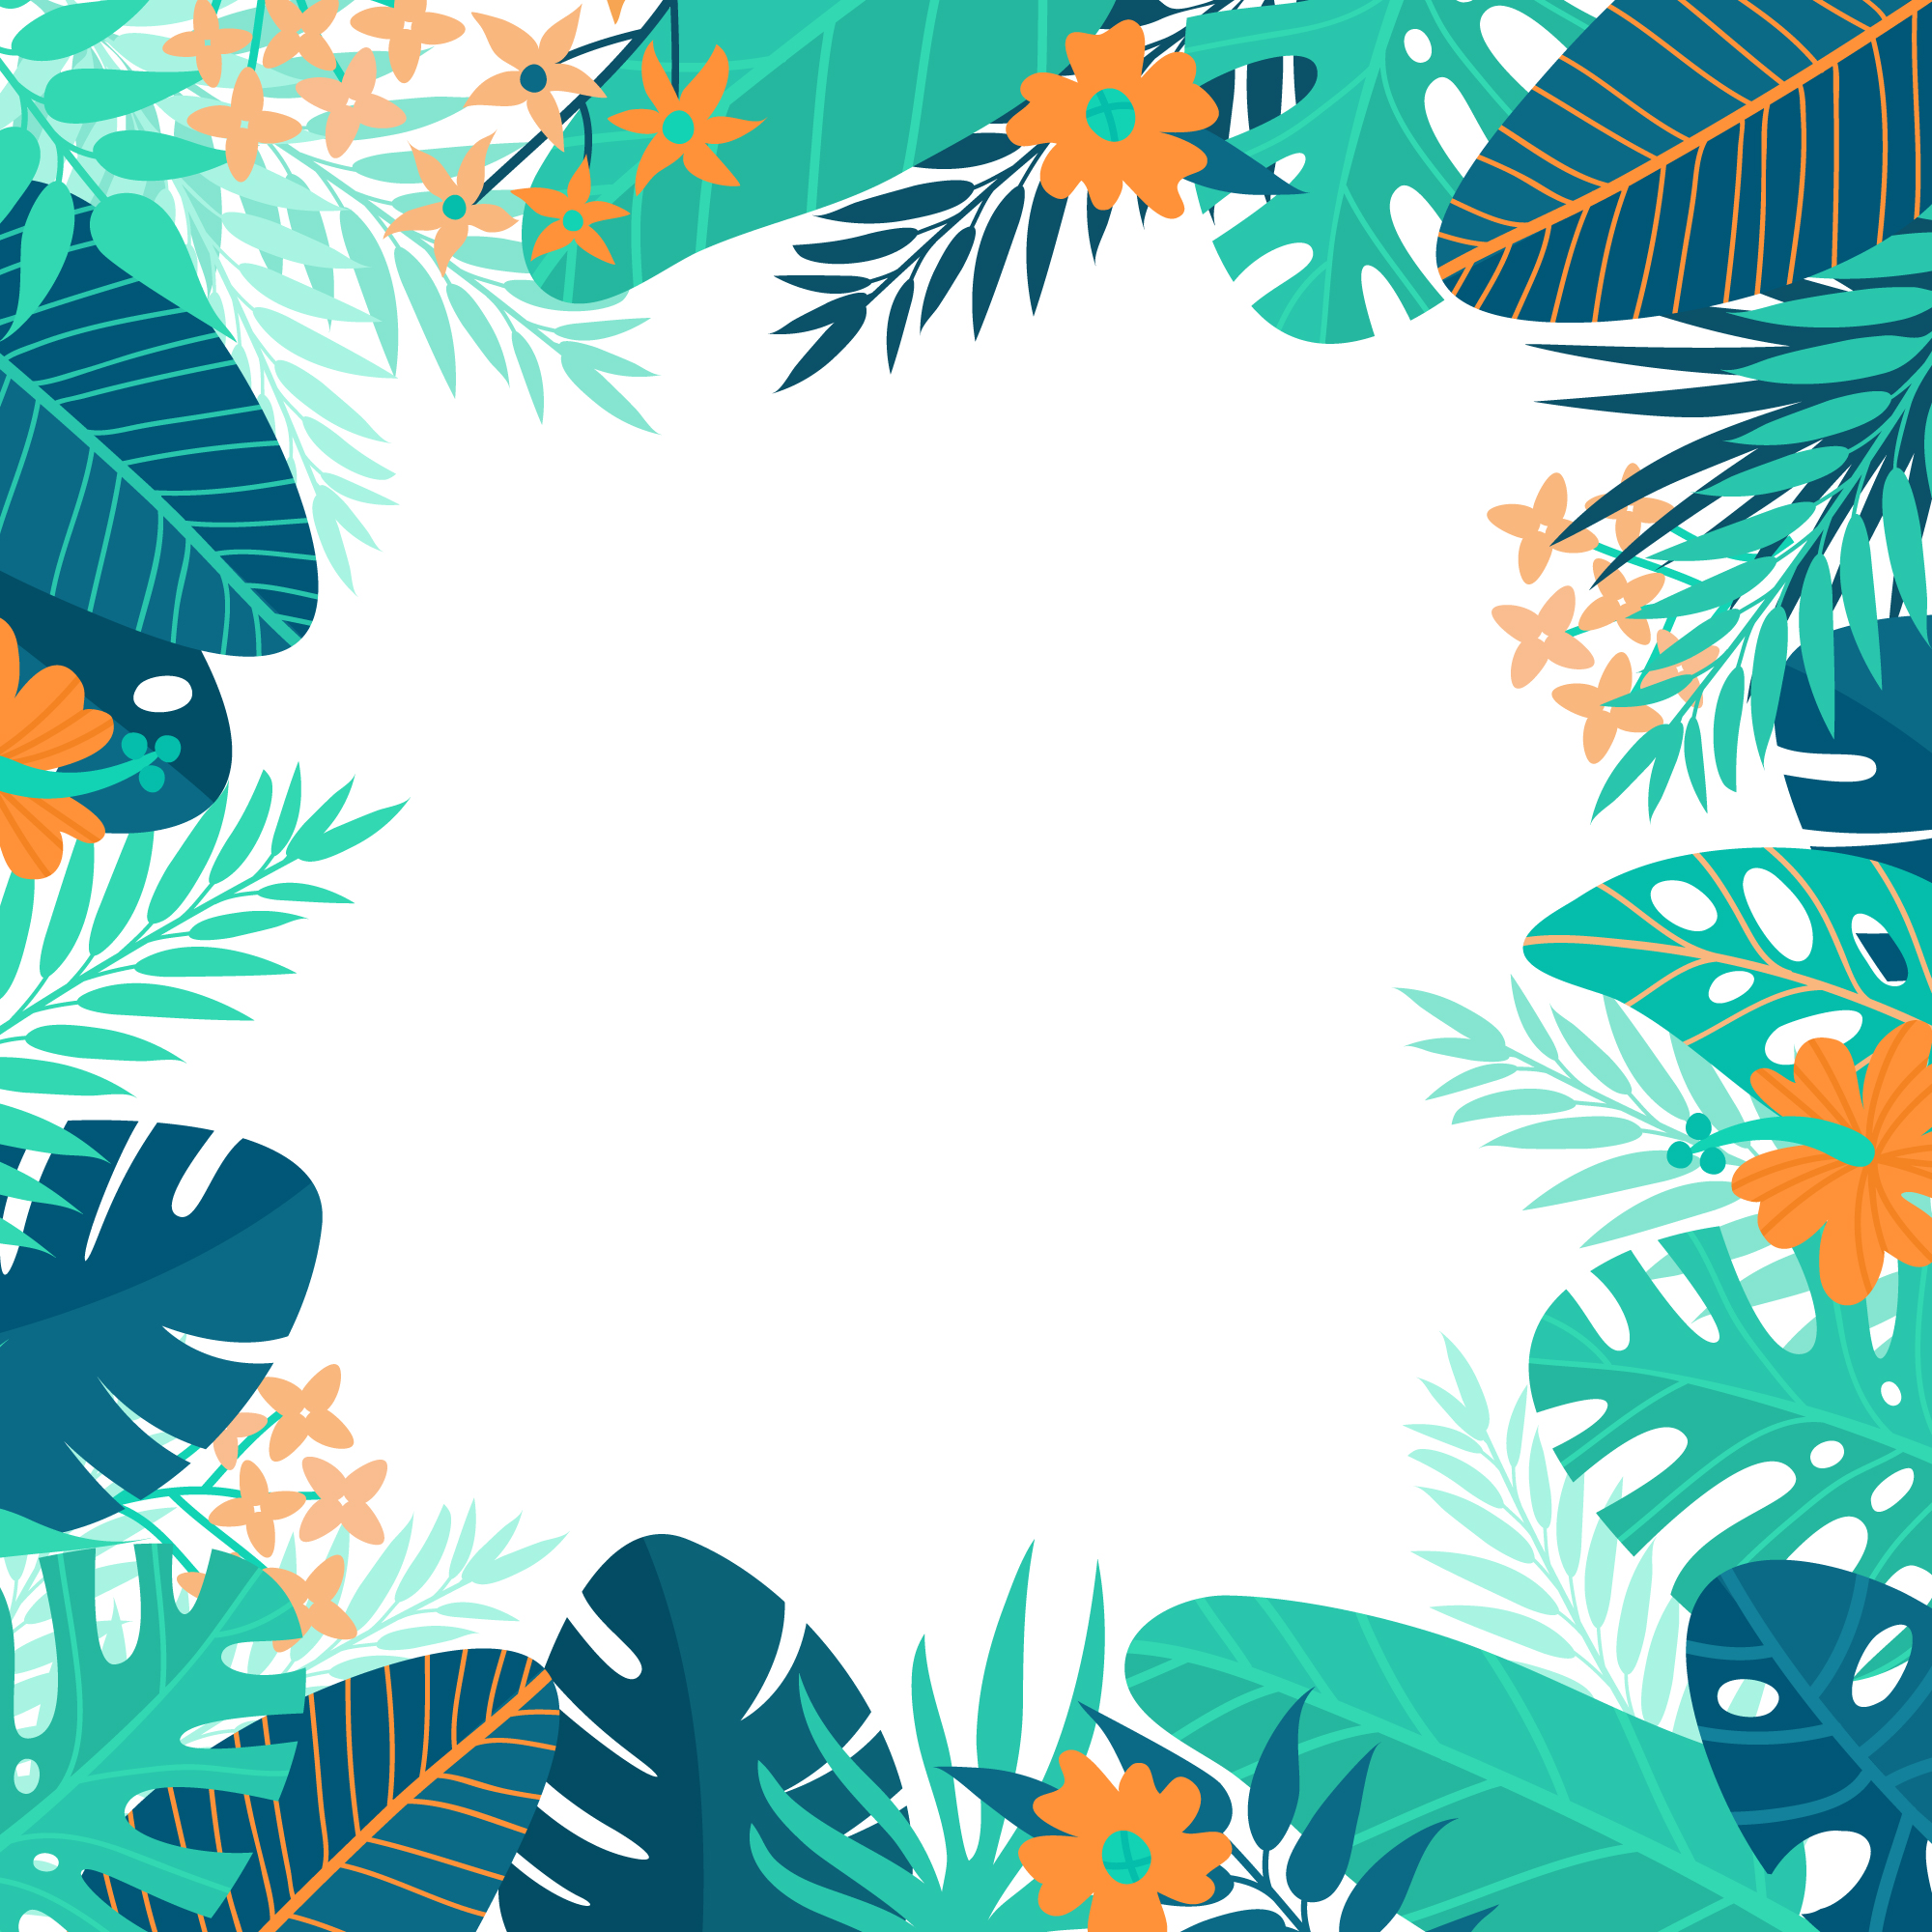 Summer background design